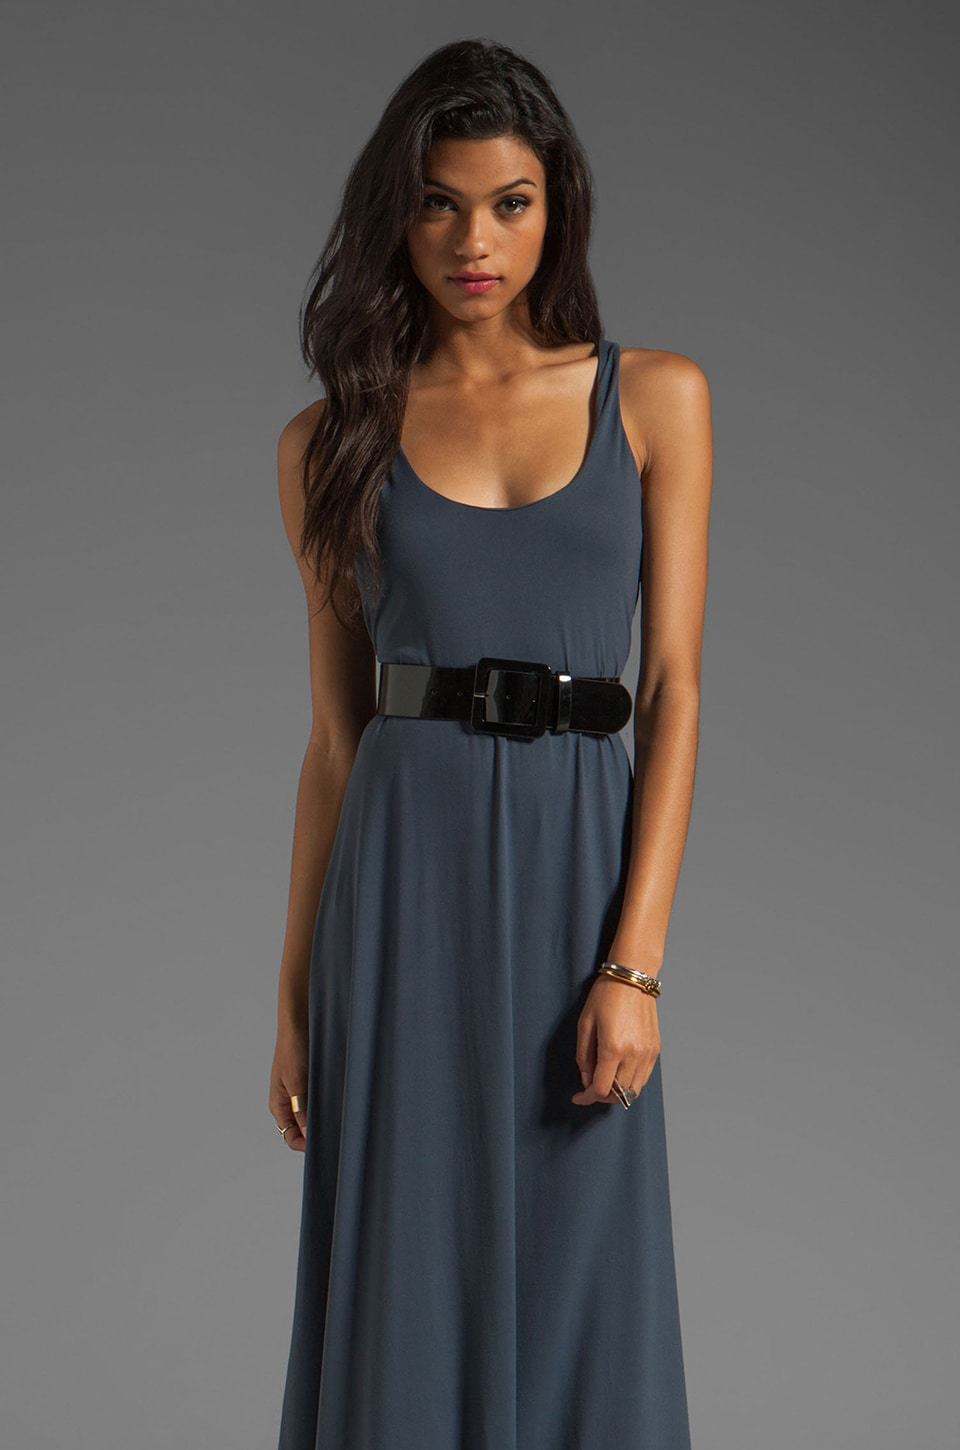 Susana Monaco Light Supplex Loni Dress in Charcoal